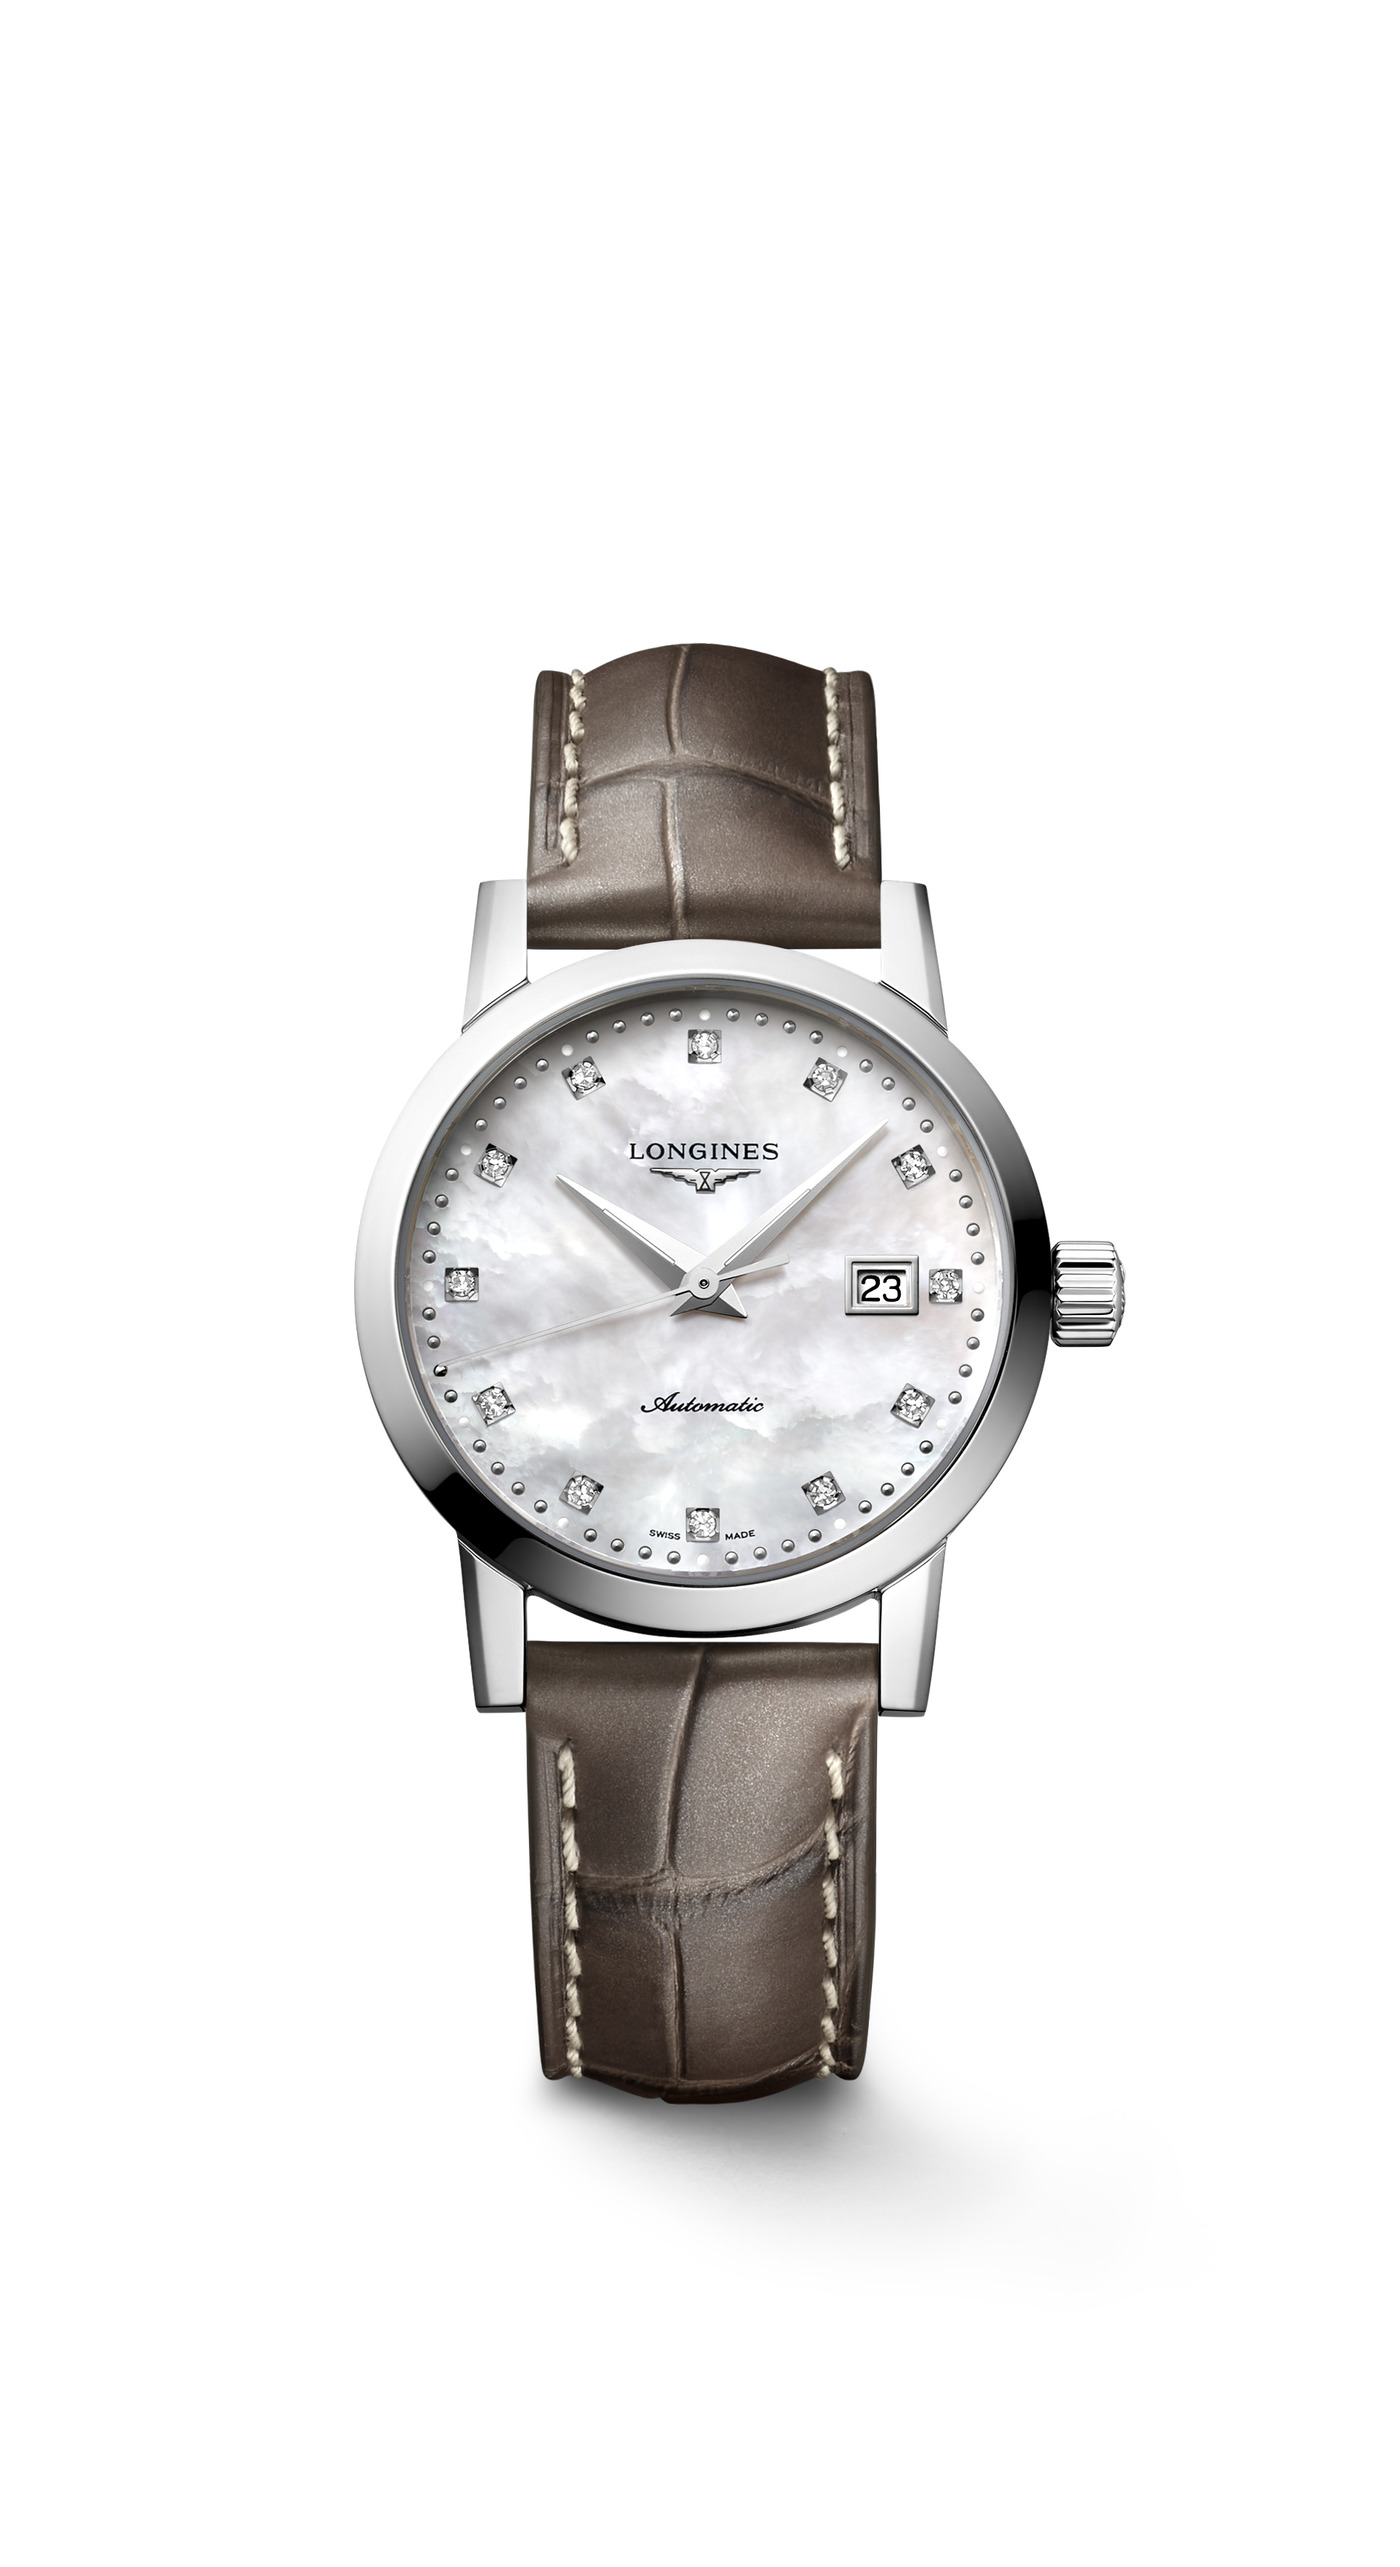 Longines The Longines 1832  Watch 14